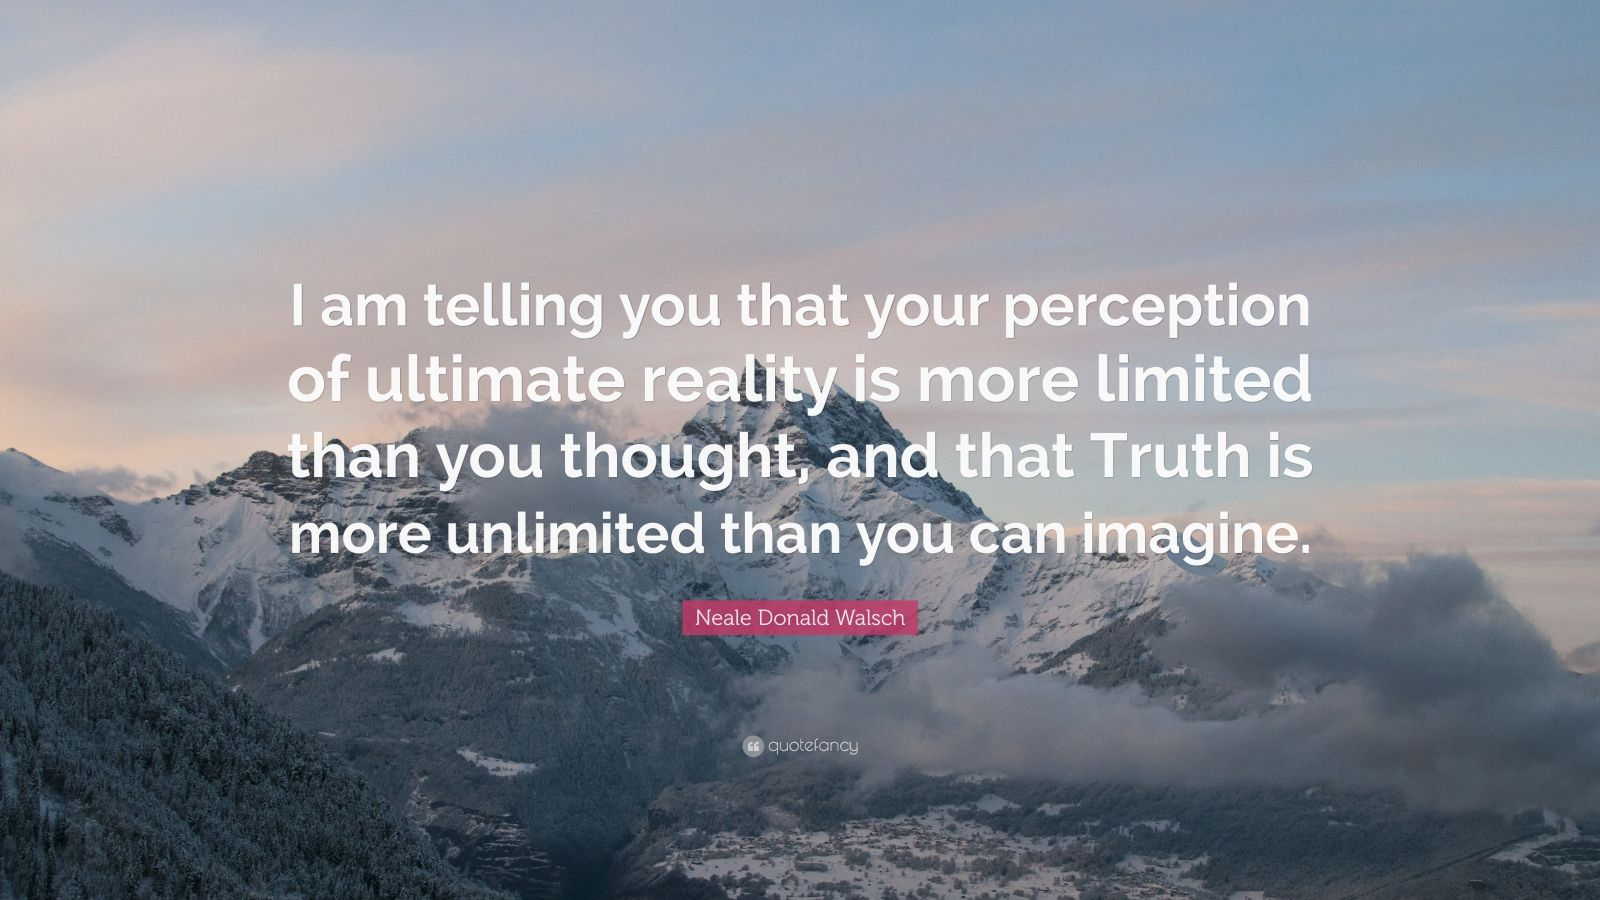 """Neale Donald Walsch Quote: """"I am telling you that your perception of ultimate reality is more limited than you thought, and that Truth is more unlimited than you can imagine."""""""